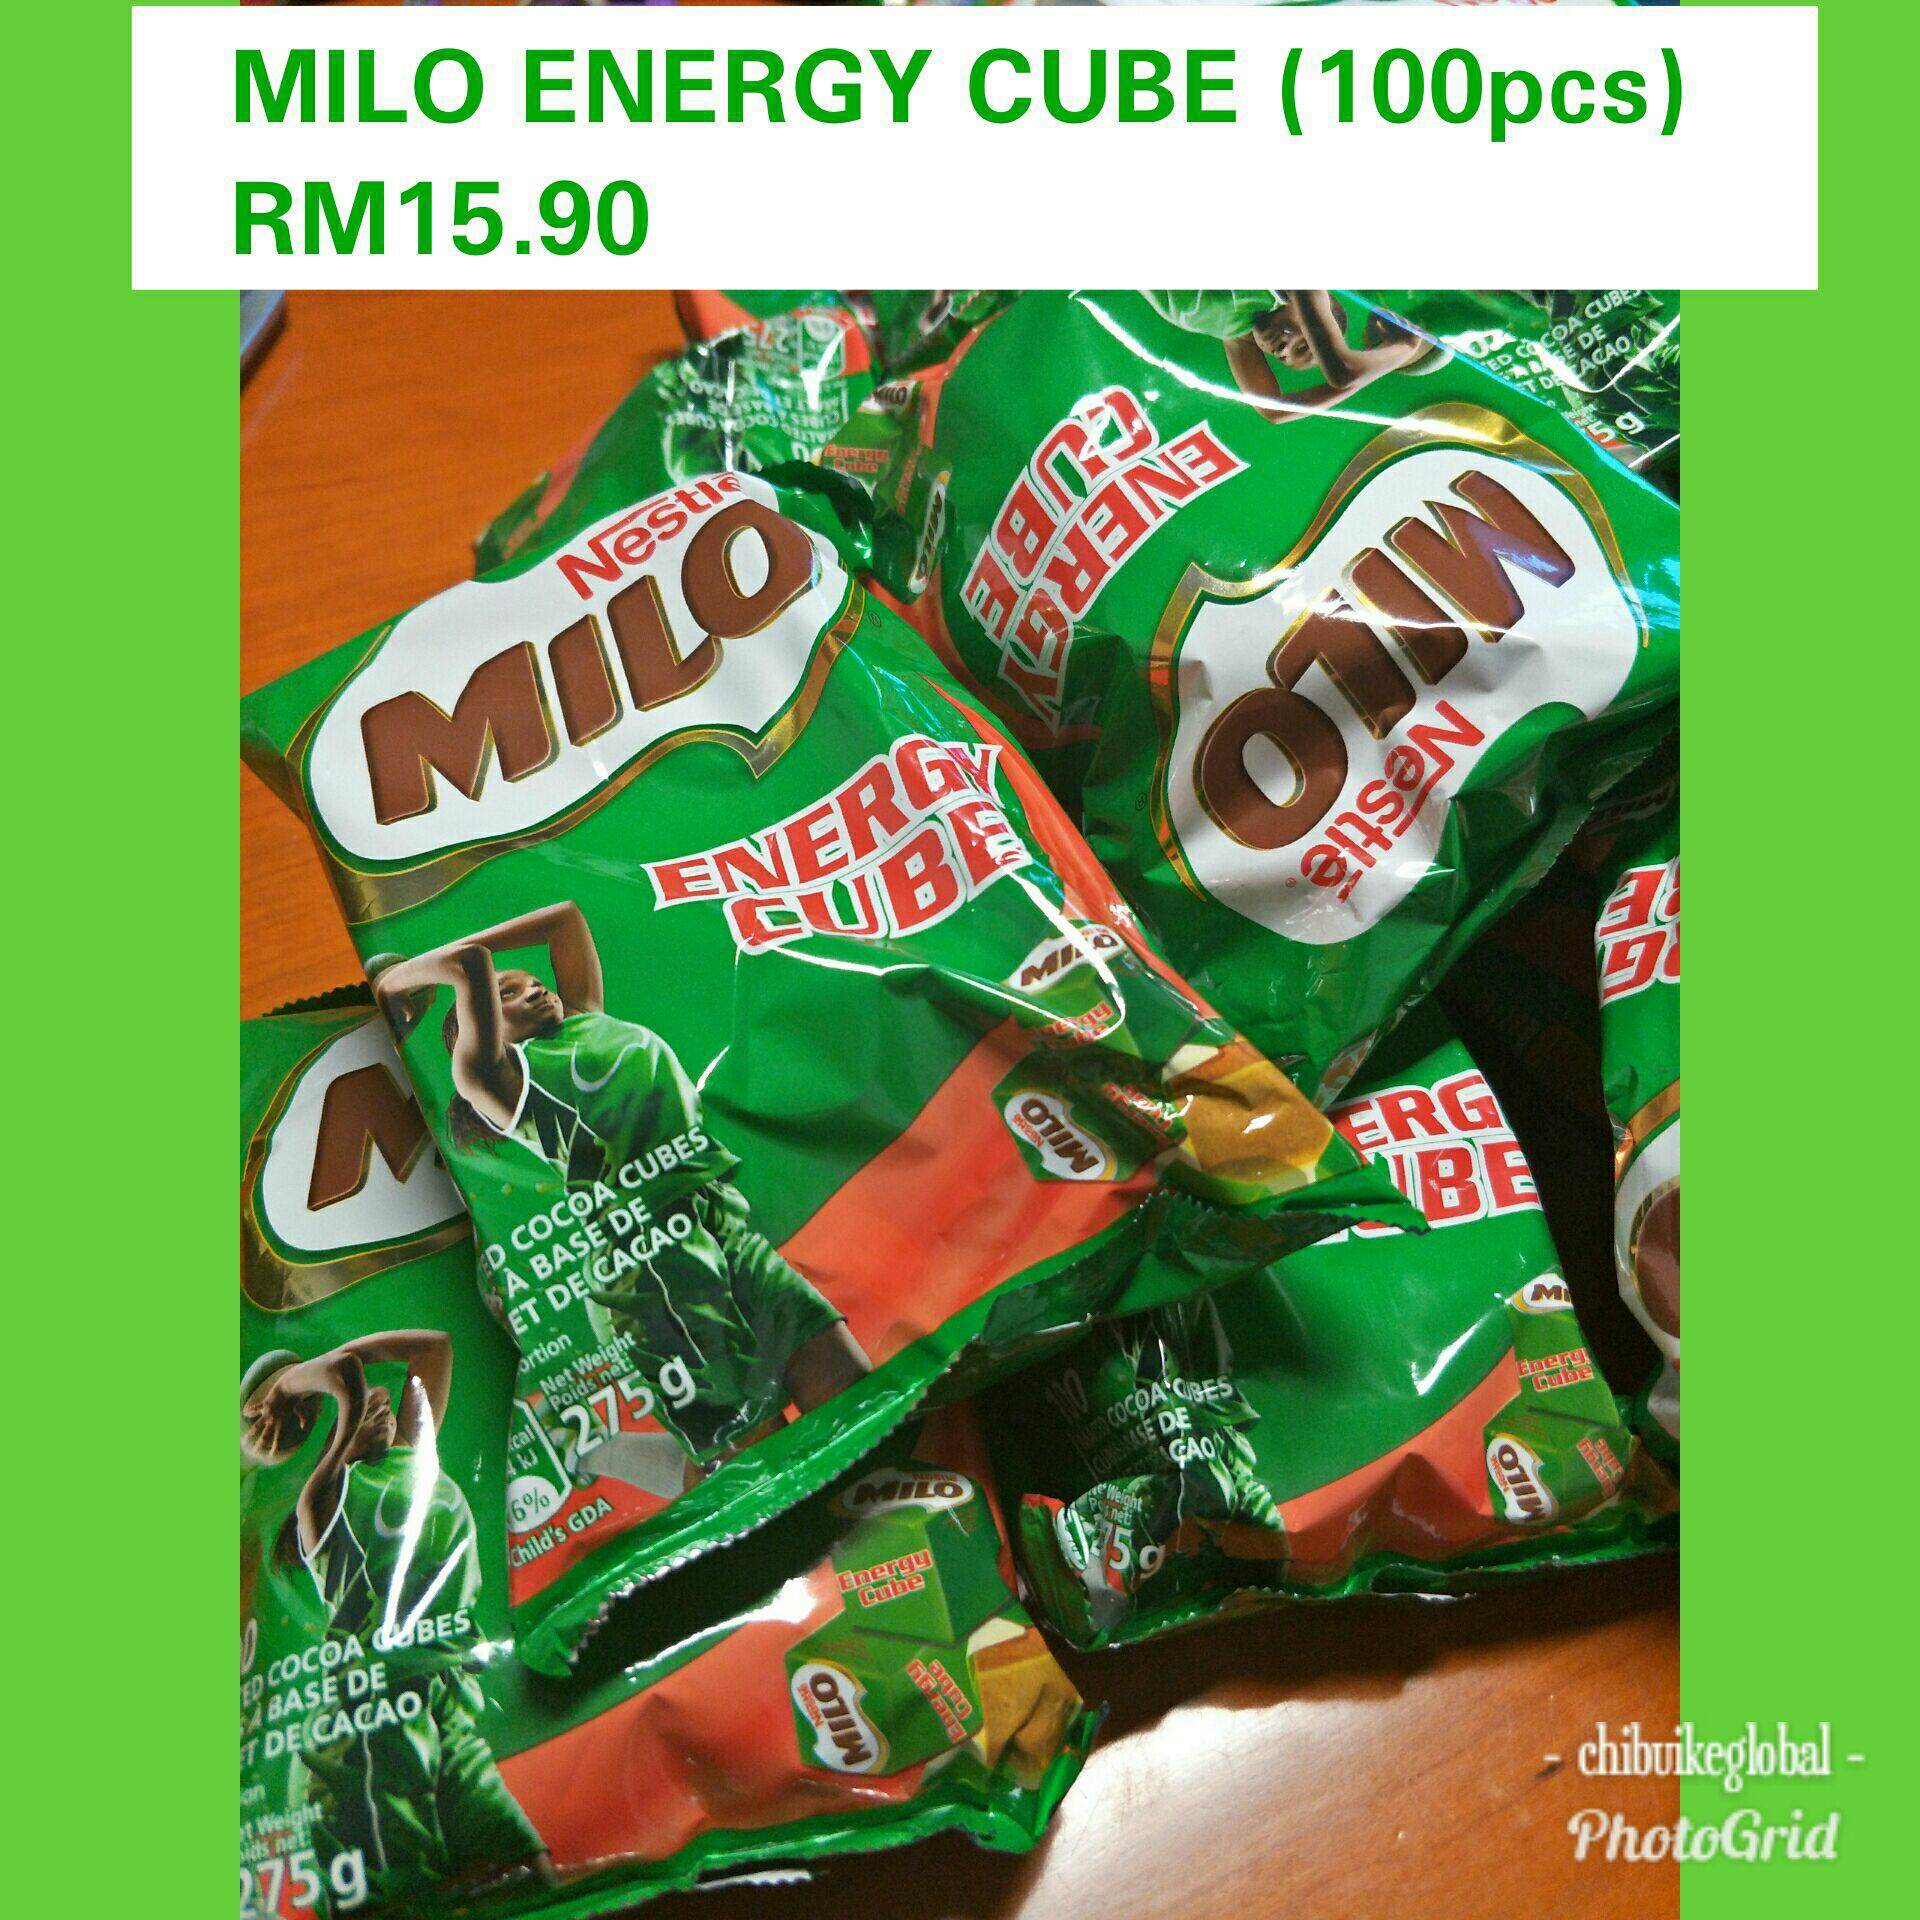 Sell Milo Mochaactiv Cheapest Best Quality My Store Energy Cube 2 Pack Myr 15